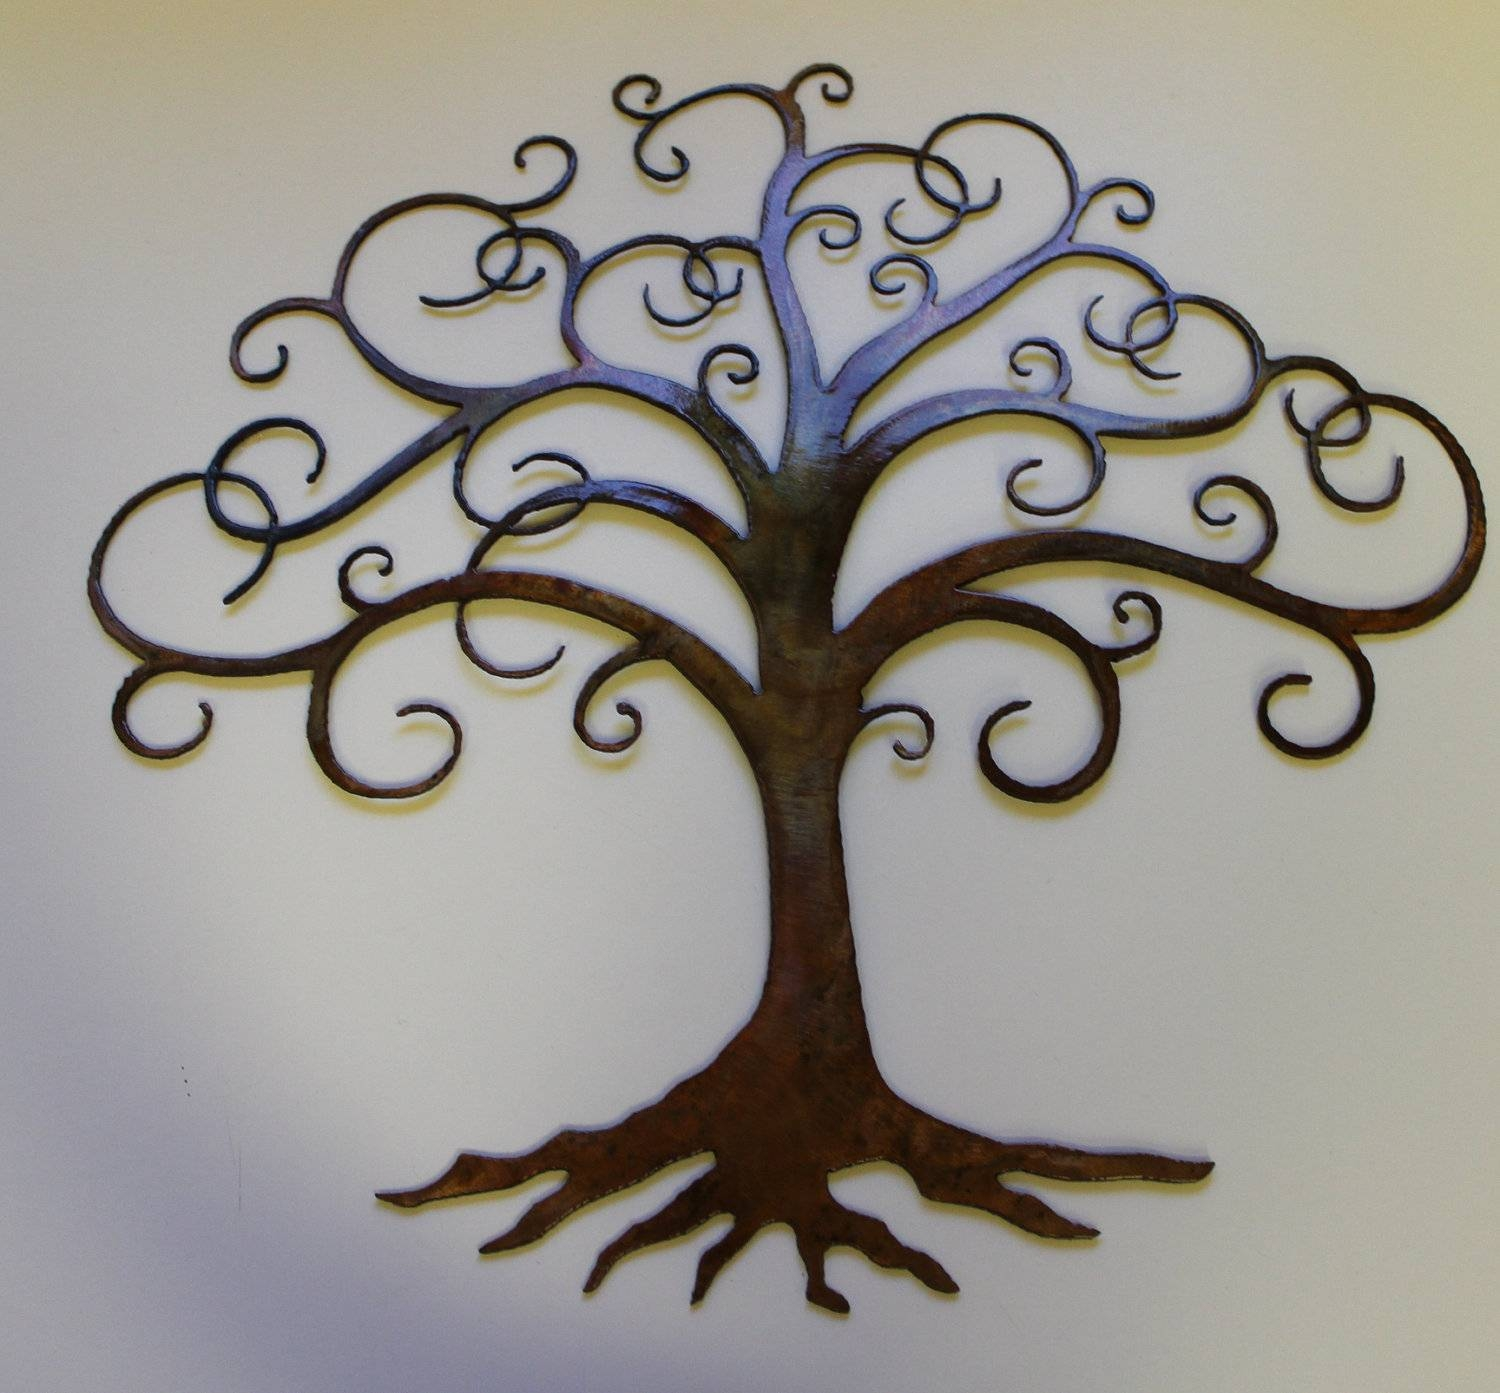 Wall Art Designs: Metal Wall Art Trees Breathtaking Large Metal Within Current Trees Metal Wall Art (View 19 of 20)